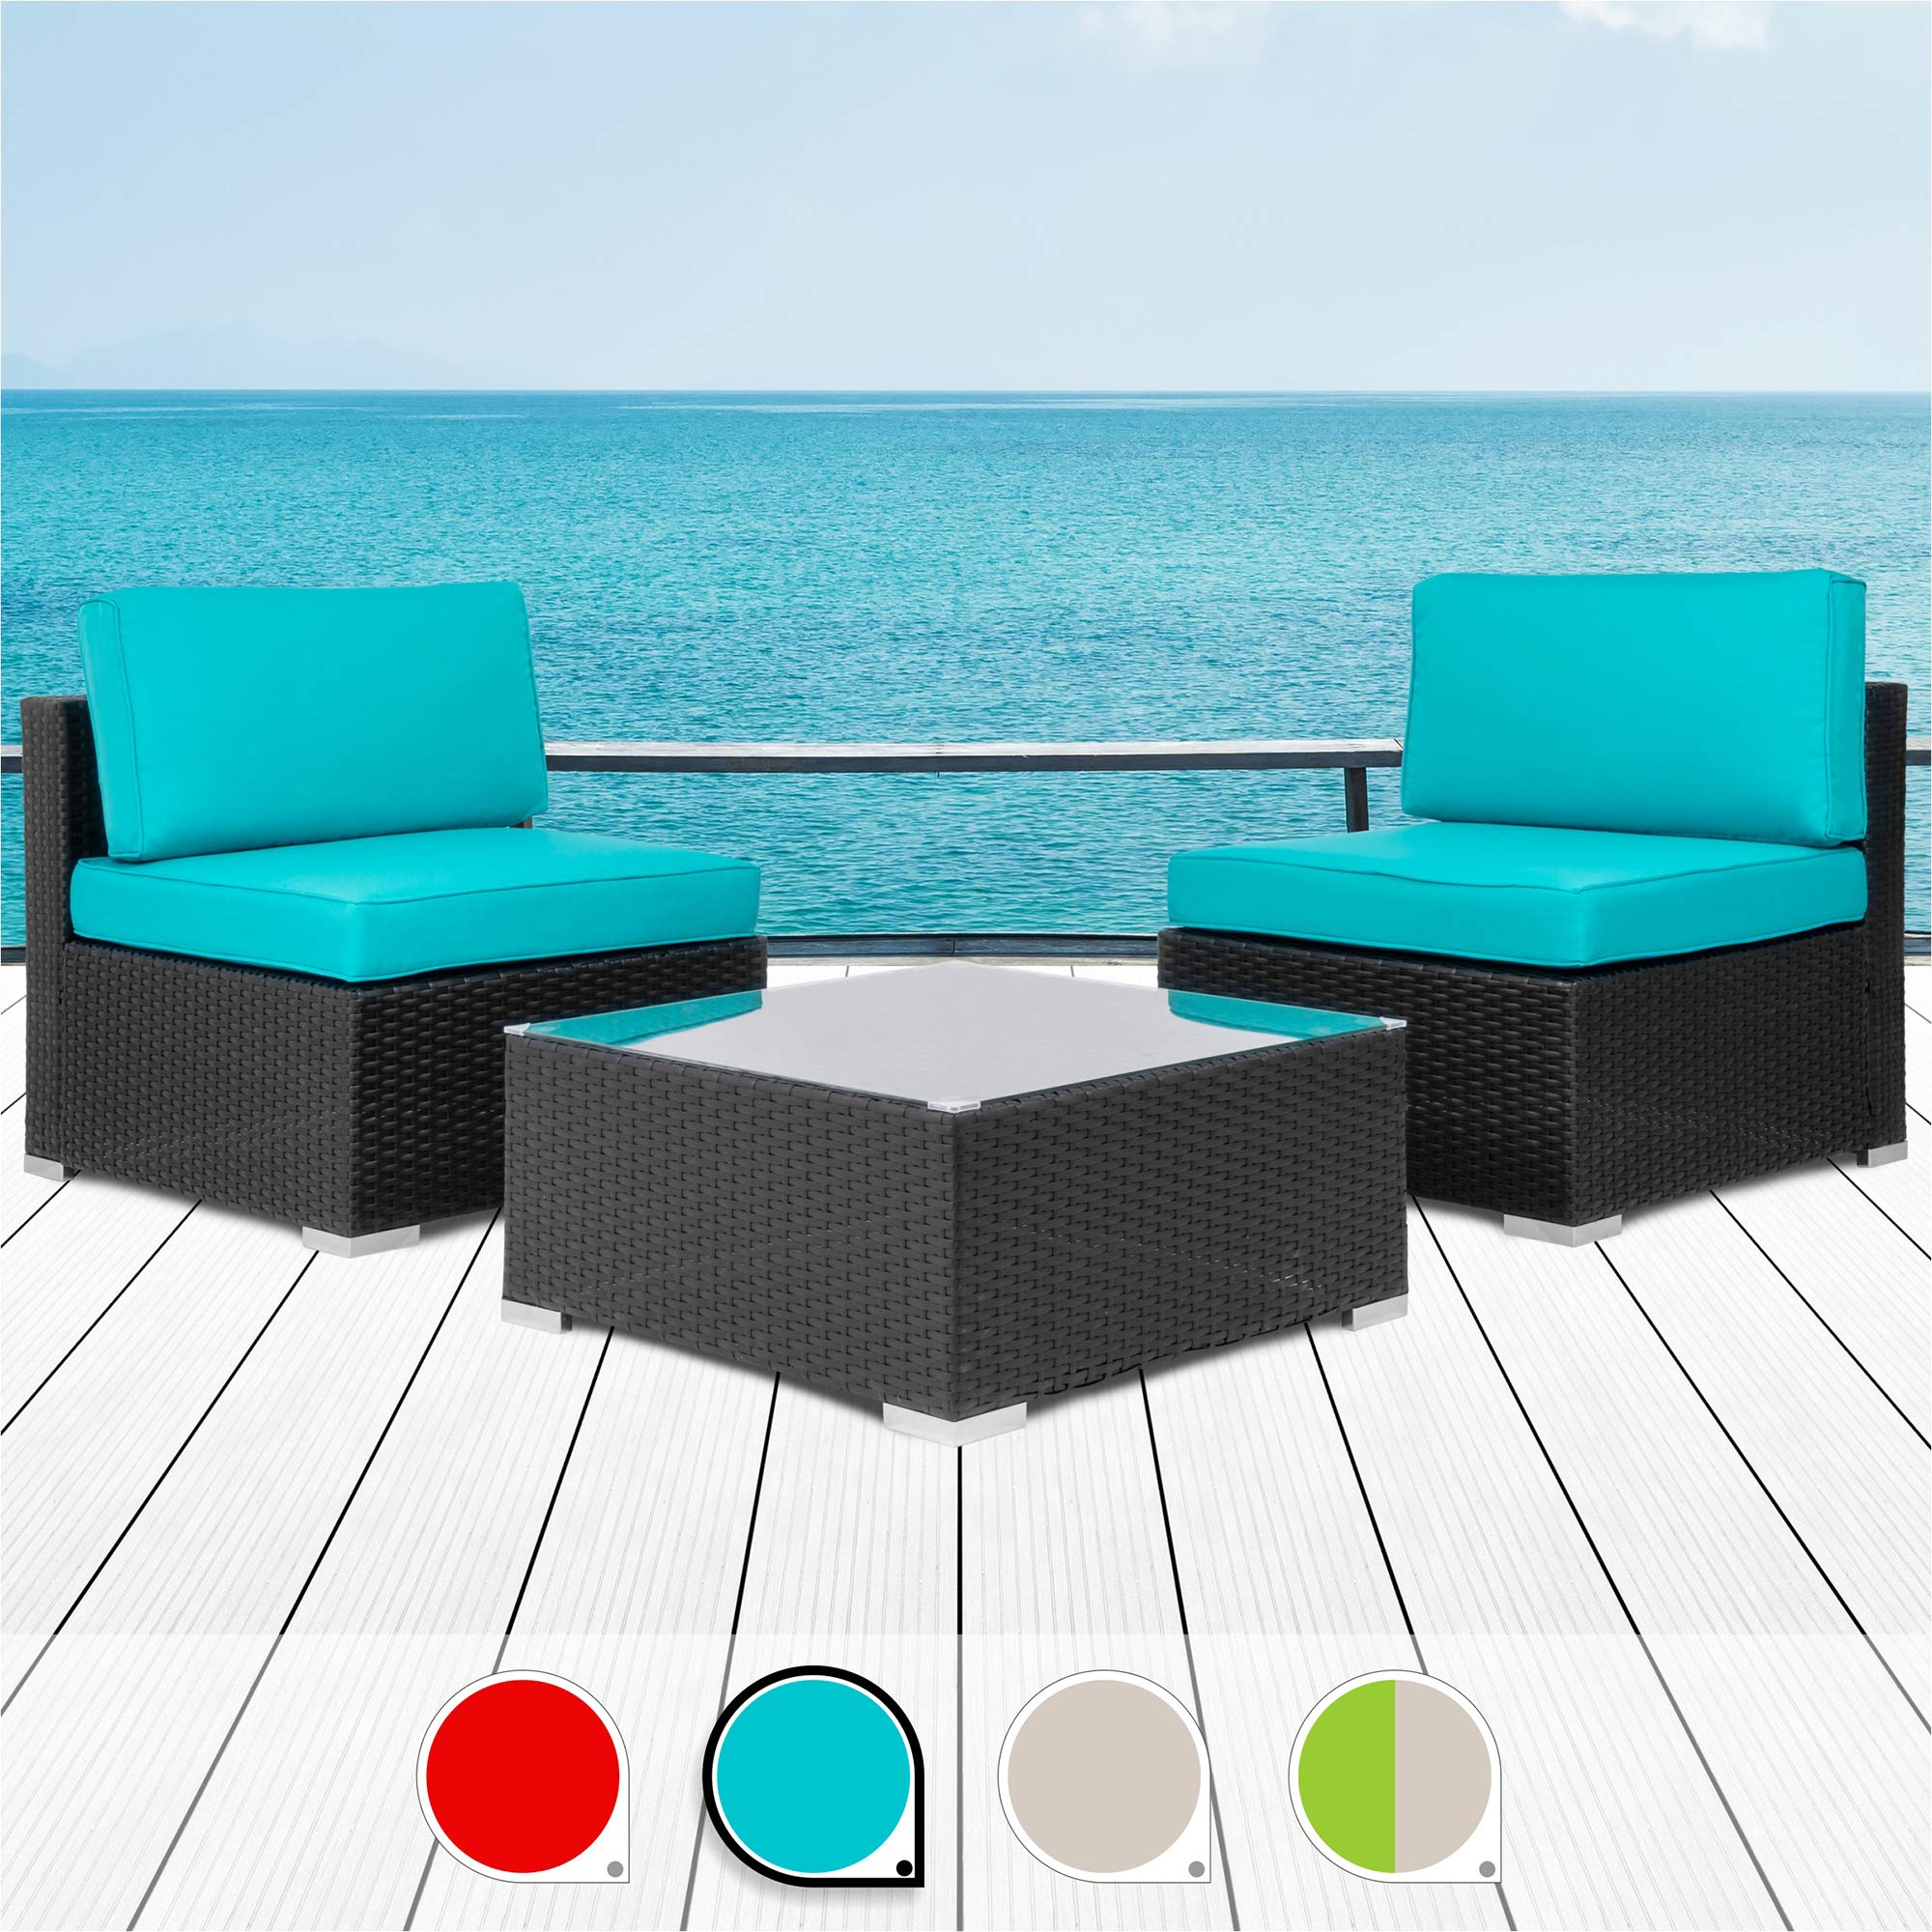 Walsunny 3 Pieces Patio Set Outdoor Wicker Patio Furniture Sets Modern Rocking Bistro Set Rattan Chair Conversation Sets with Coffee Table (Brown) (Blue) by Walsunny